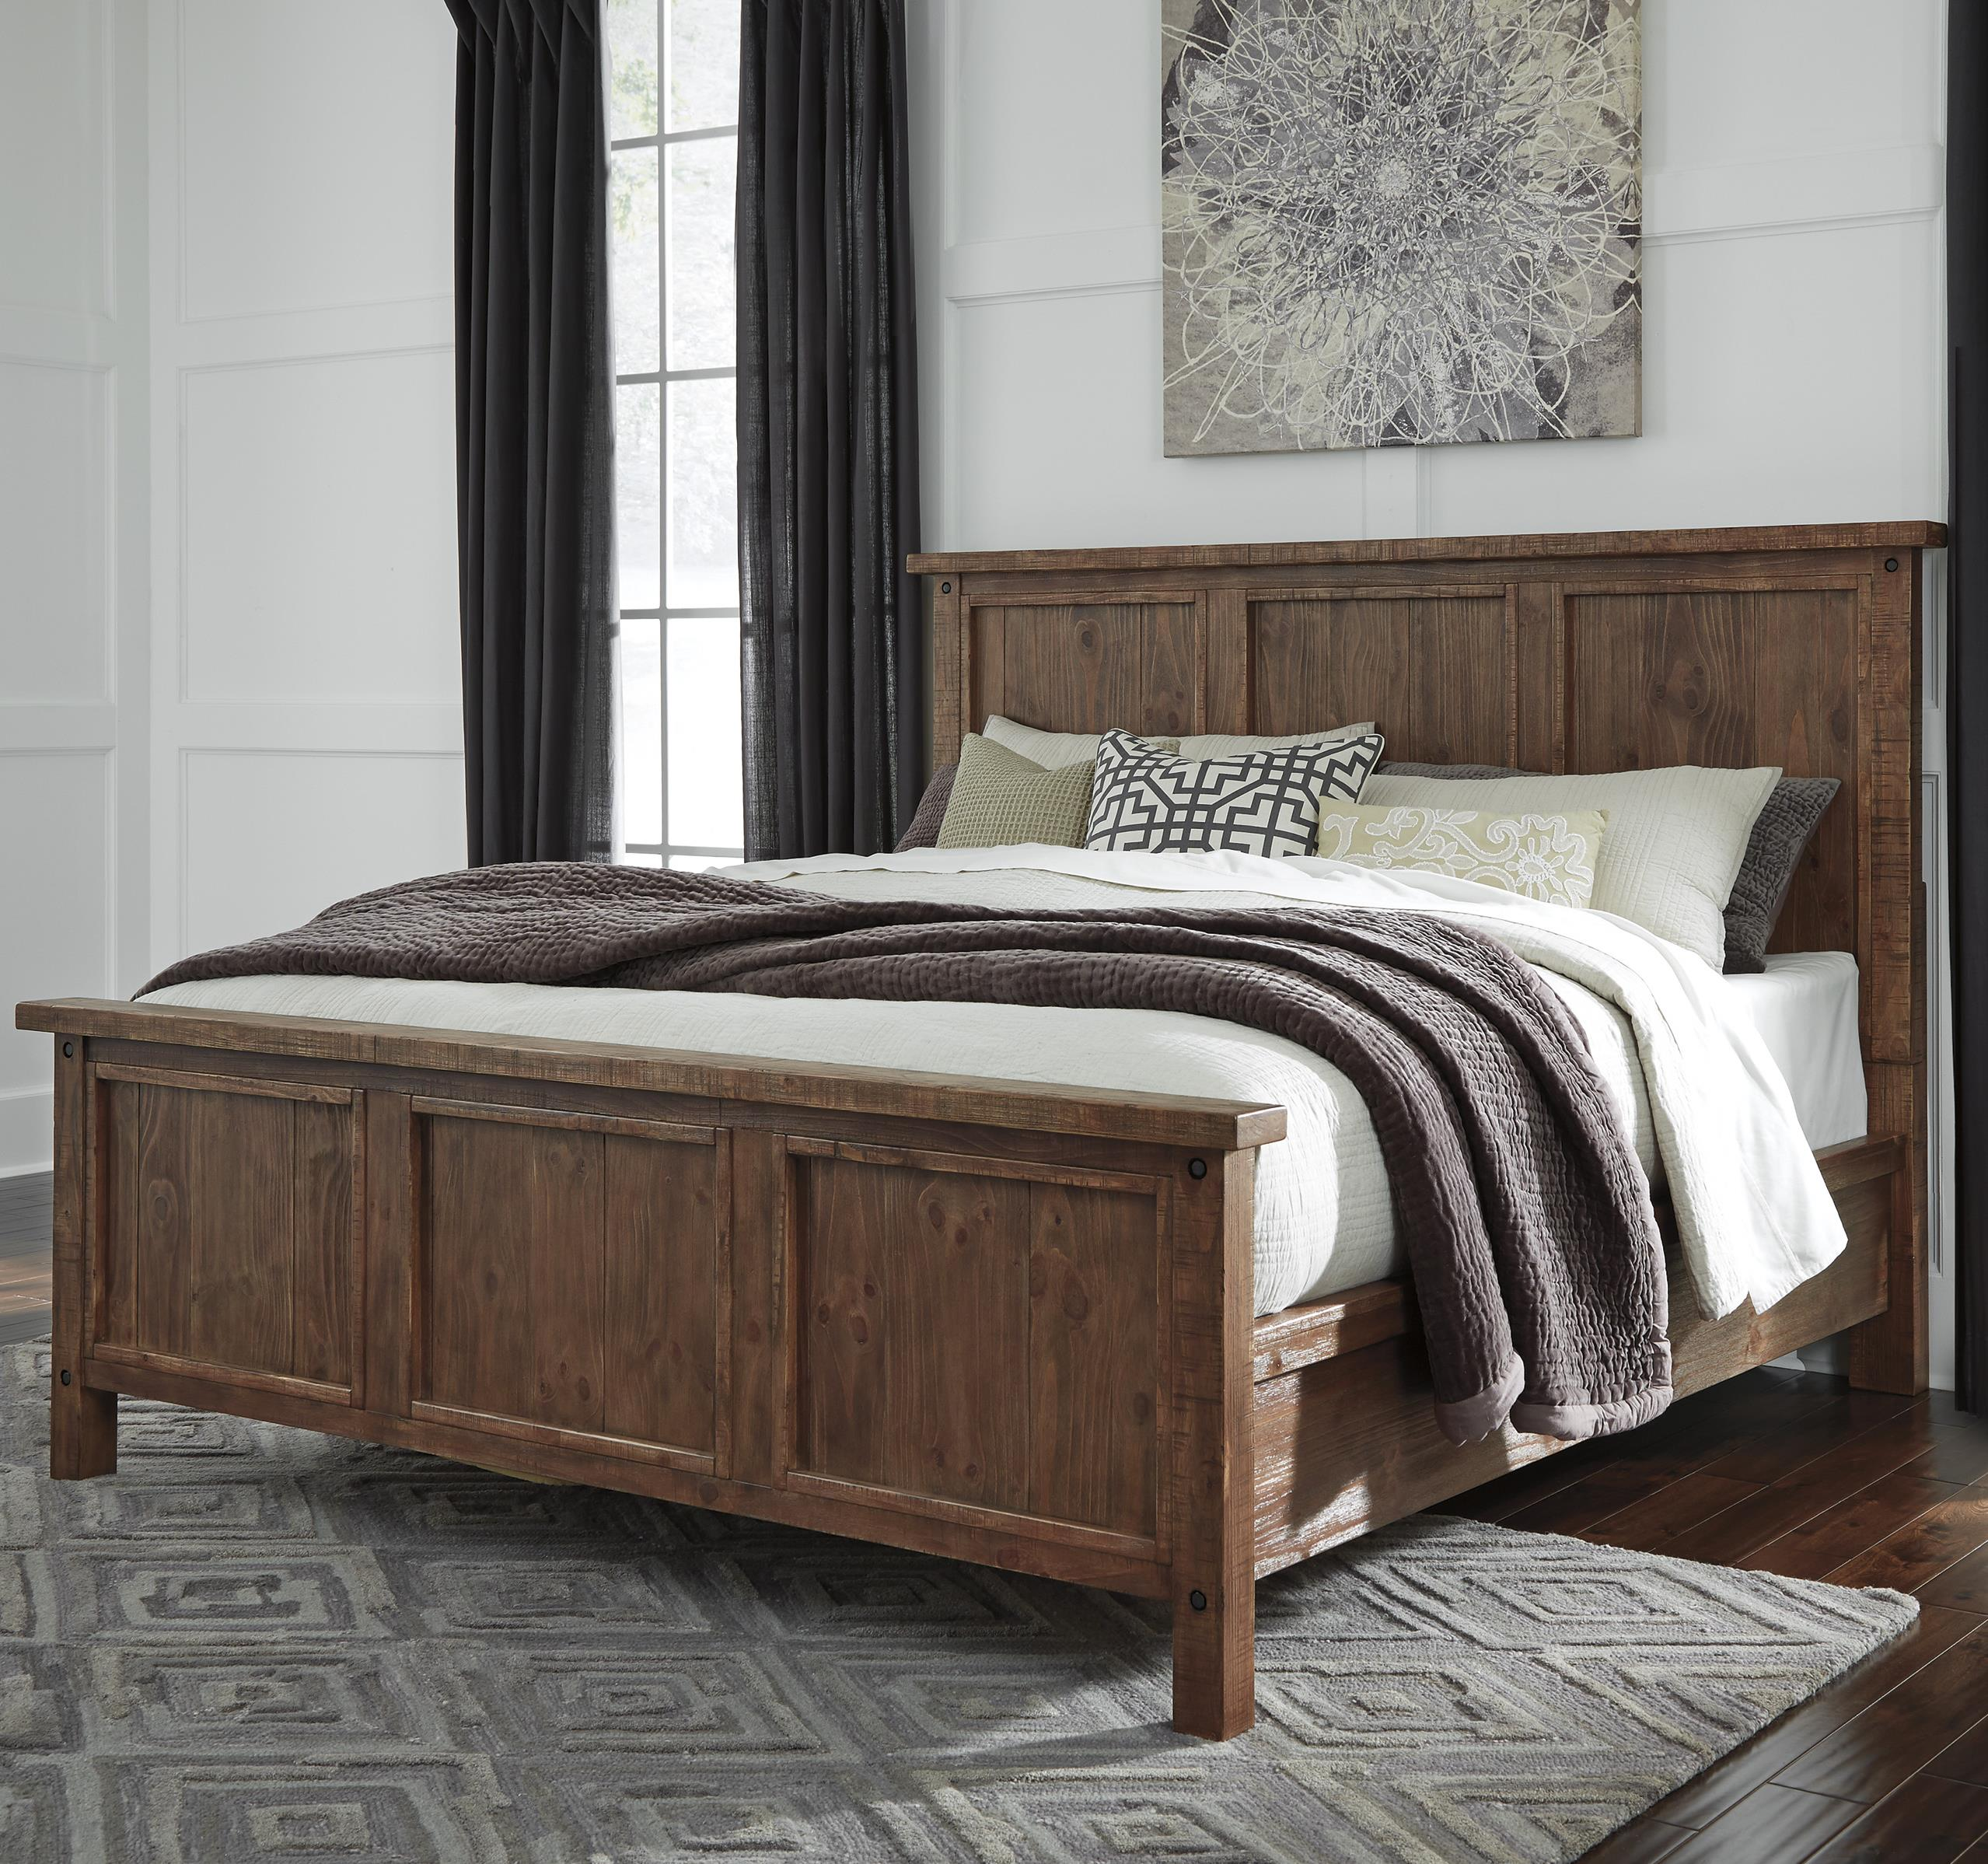 Signature Design by Ashley Tamilo California King Wood Panel Bed - Item Number: B714-58+56+95